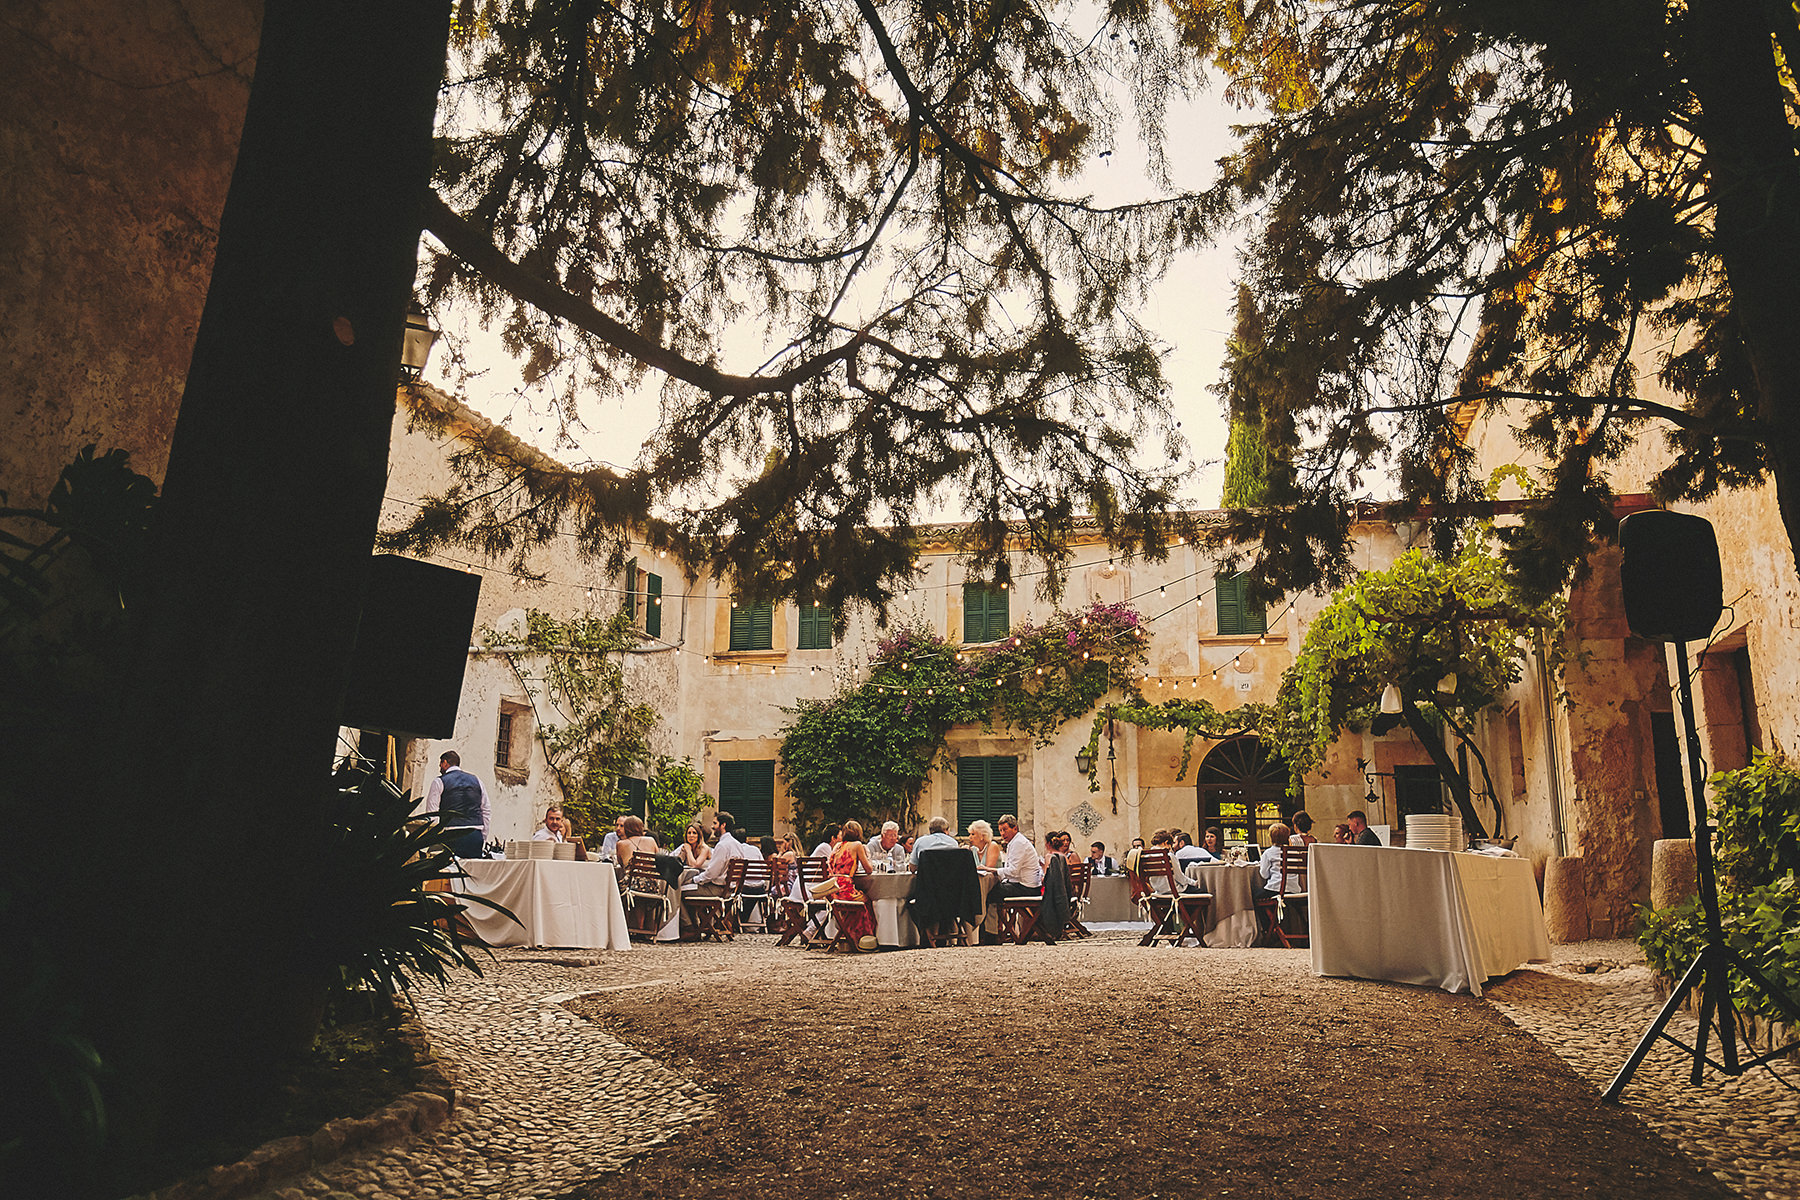 356 - Destination wedding in a magical Mallorca